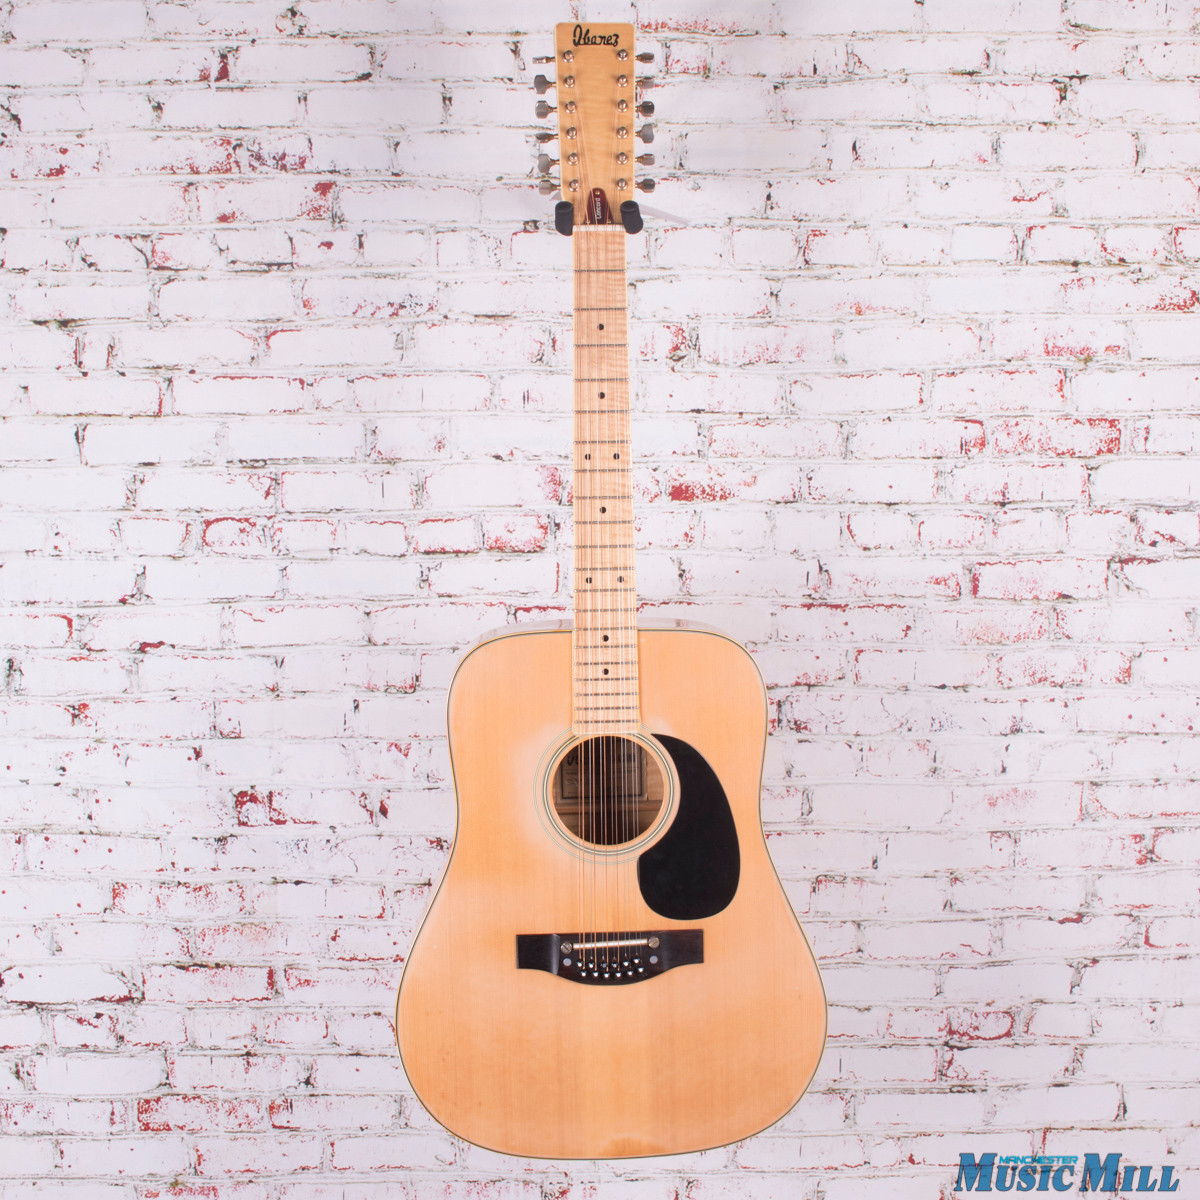 Ibanez Concord 699 12 12 String Acoustic Guitar Natural